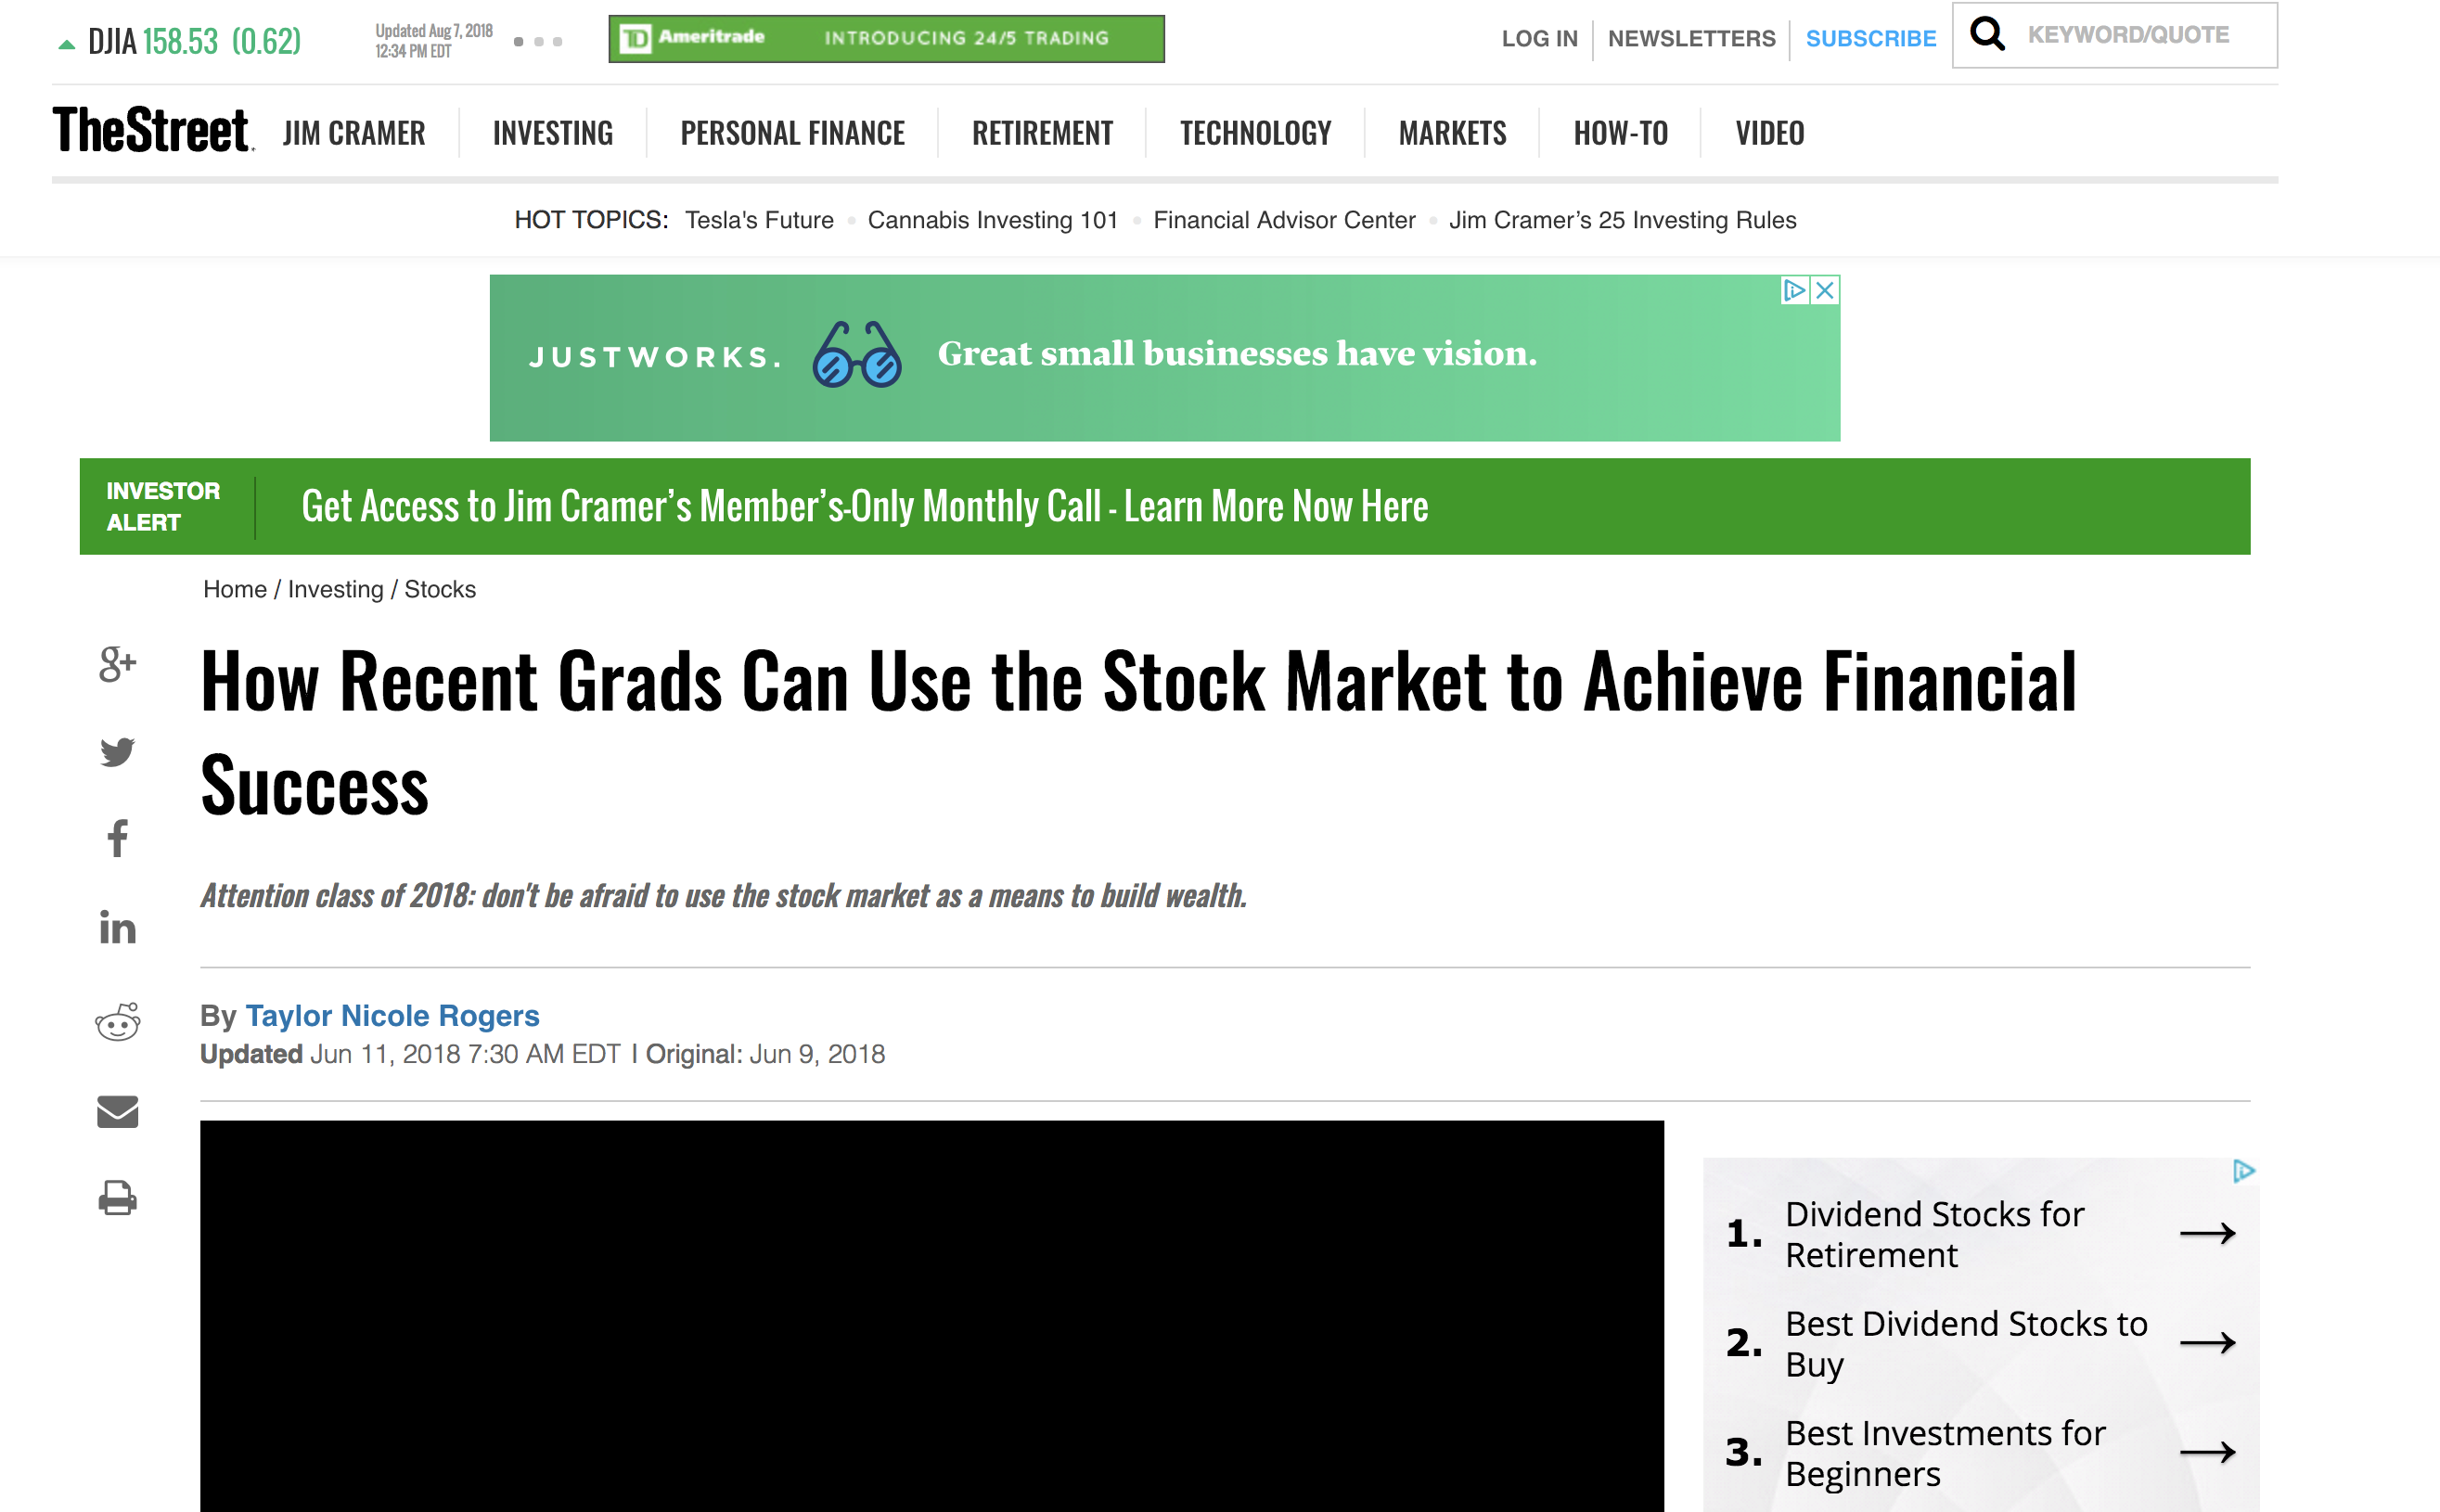 How Recent Grads Can Use the Stock Market to Achieve